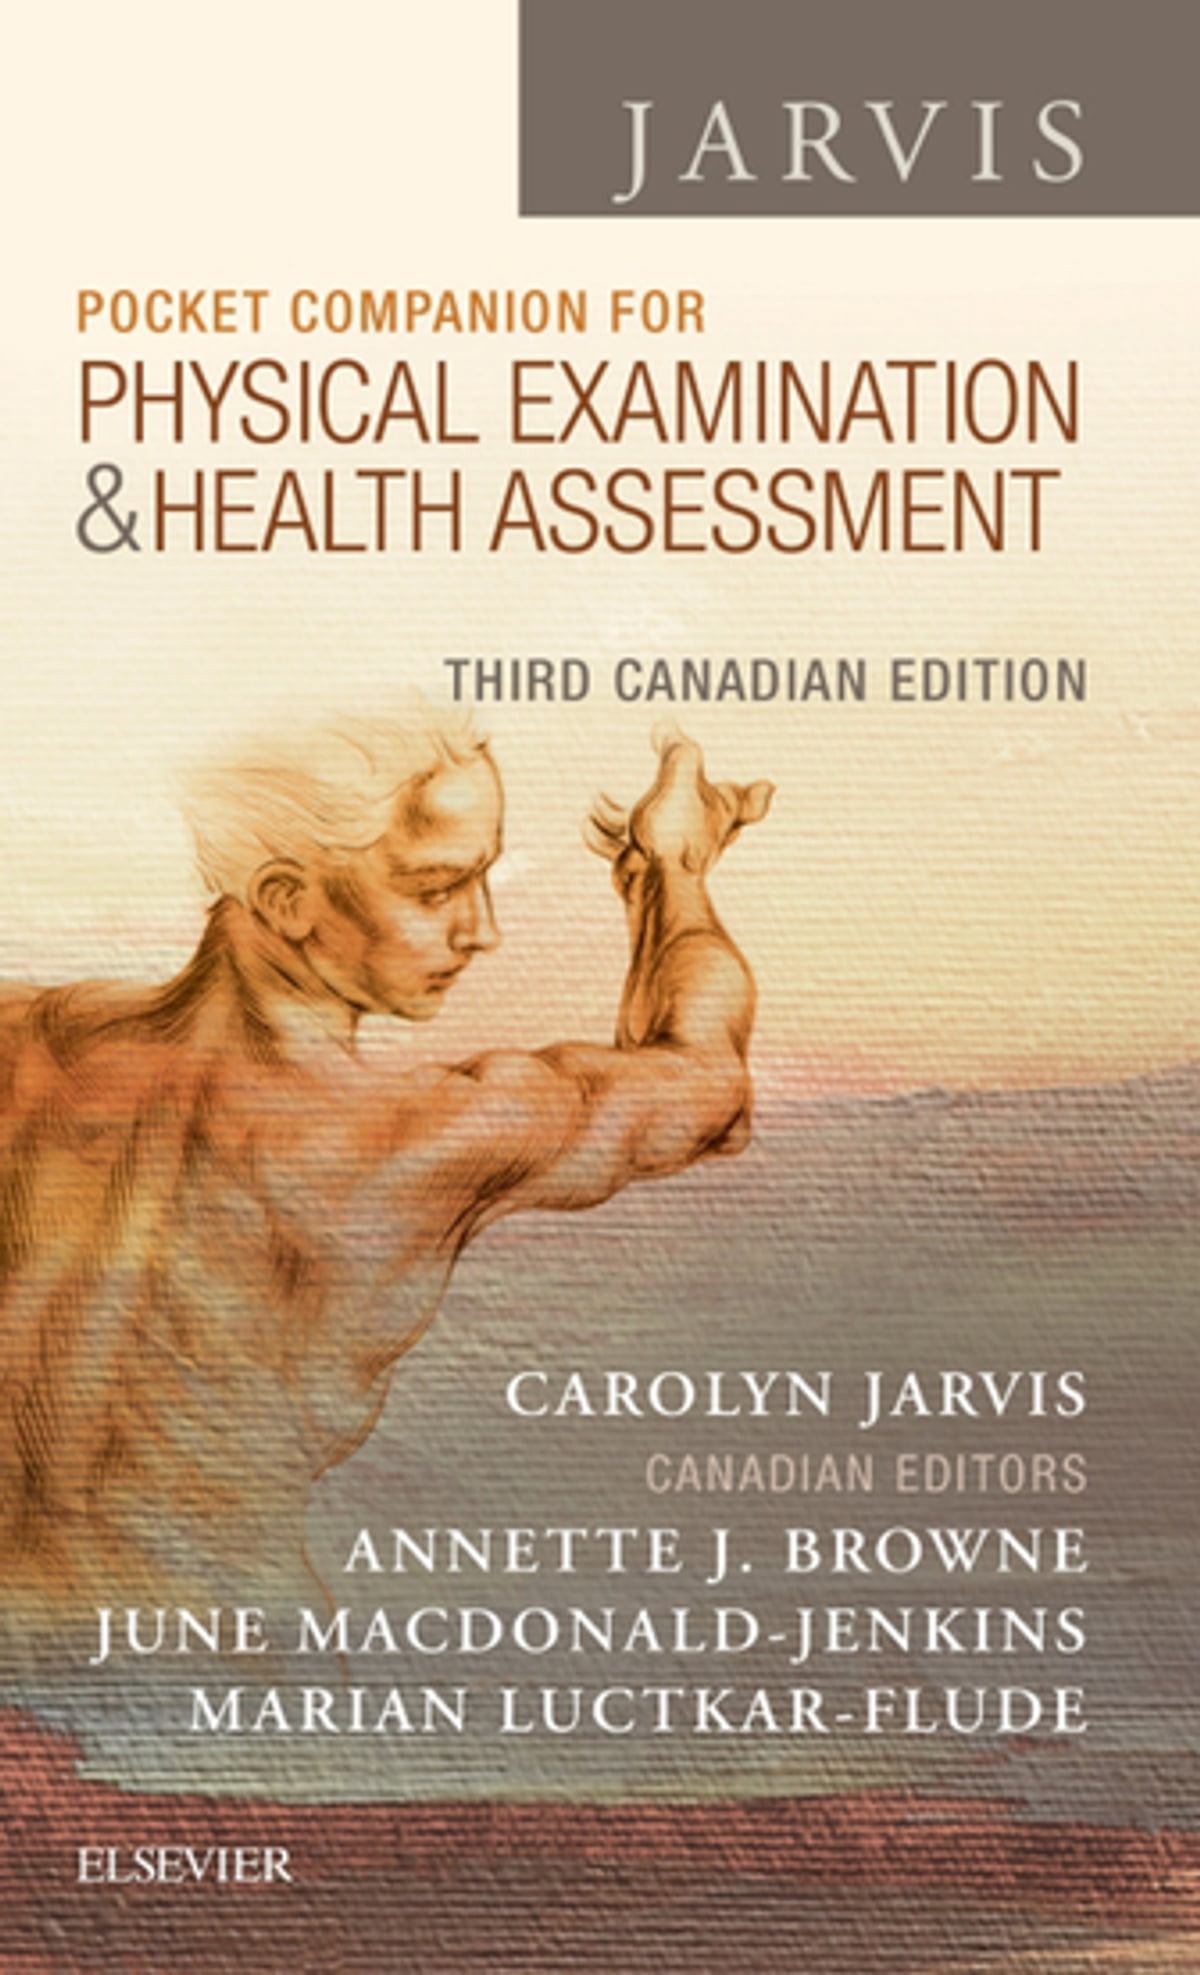 Pocket Companion for Physical Examination and Health Assessment, Canadian  Edition eBook by Carolyn Jarvis, PhD, APN, CNP | Rakuten Kobo